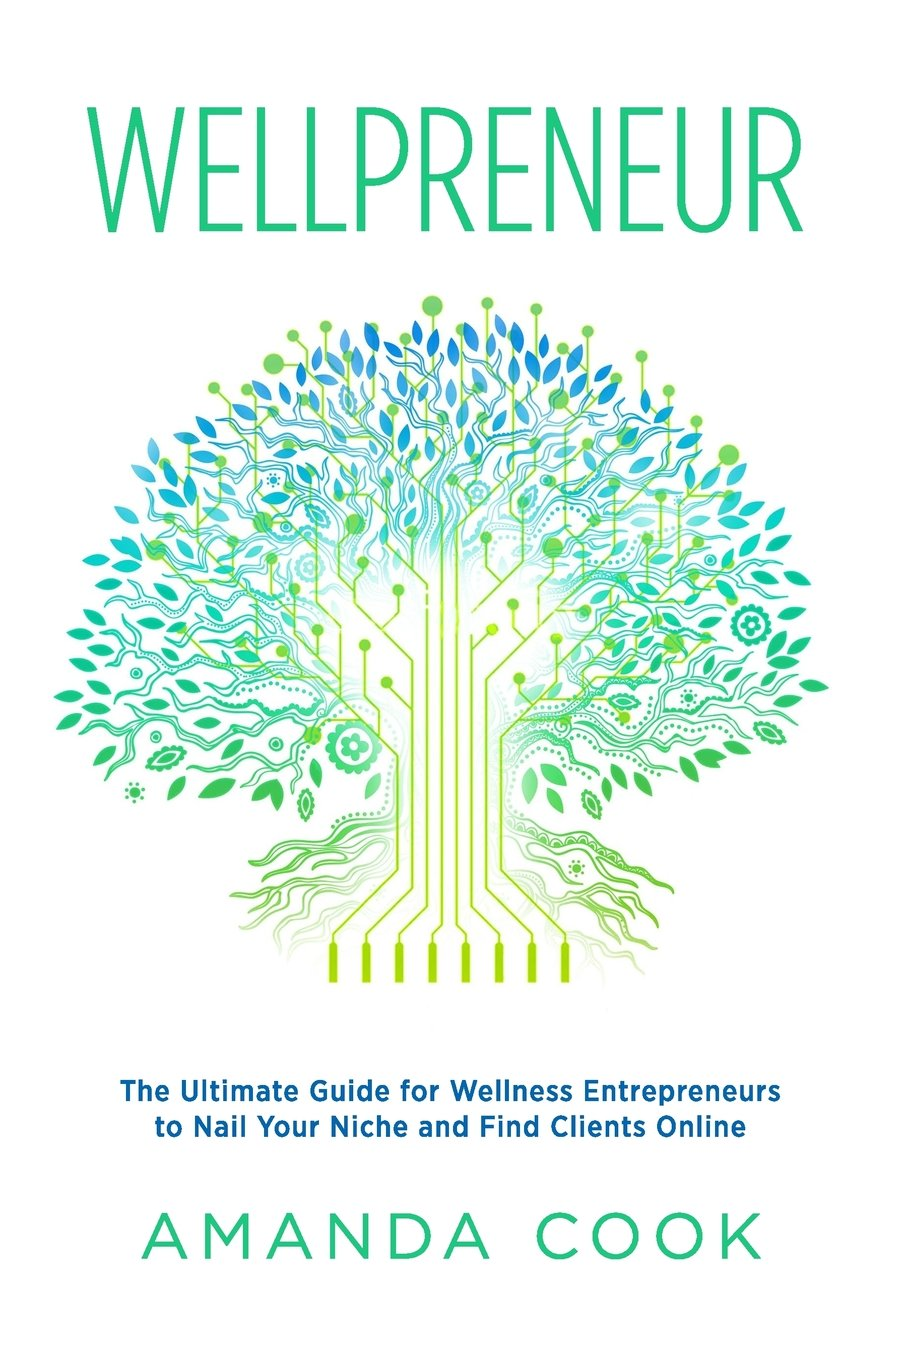 Wellpreneur: The Ultimate Guide for Wellness Entrepreneurs to Nail Your Niche and Find Clients Online pdf